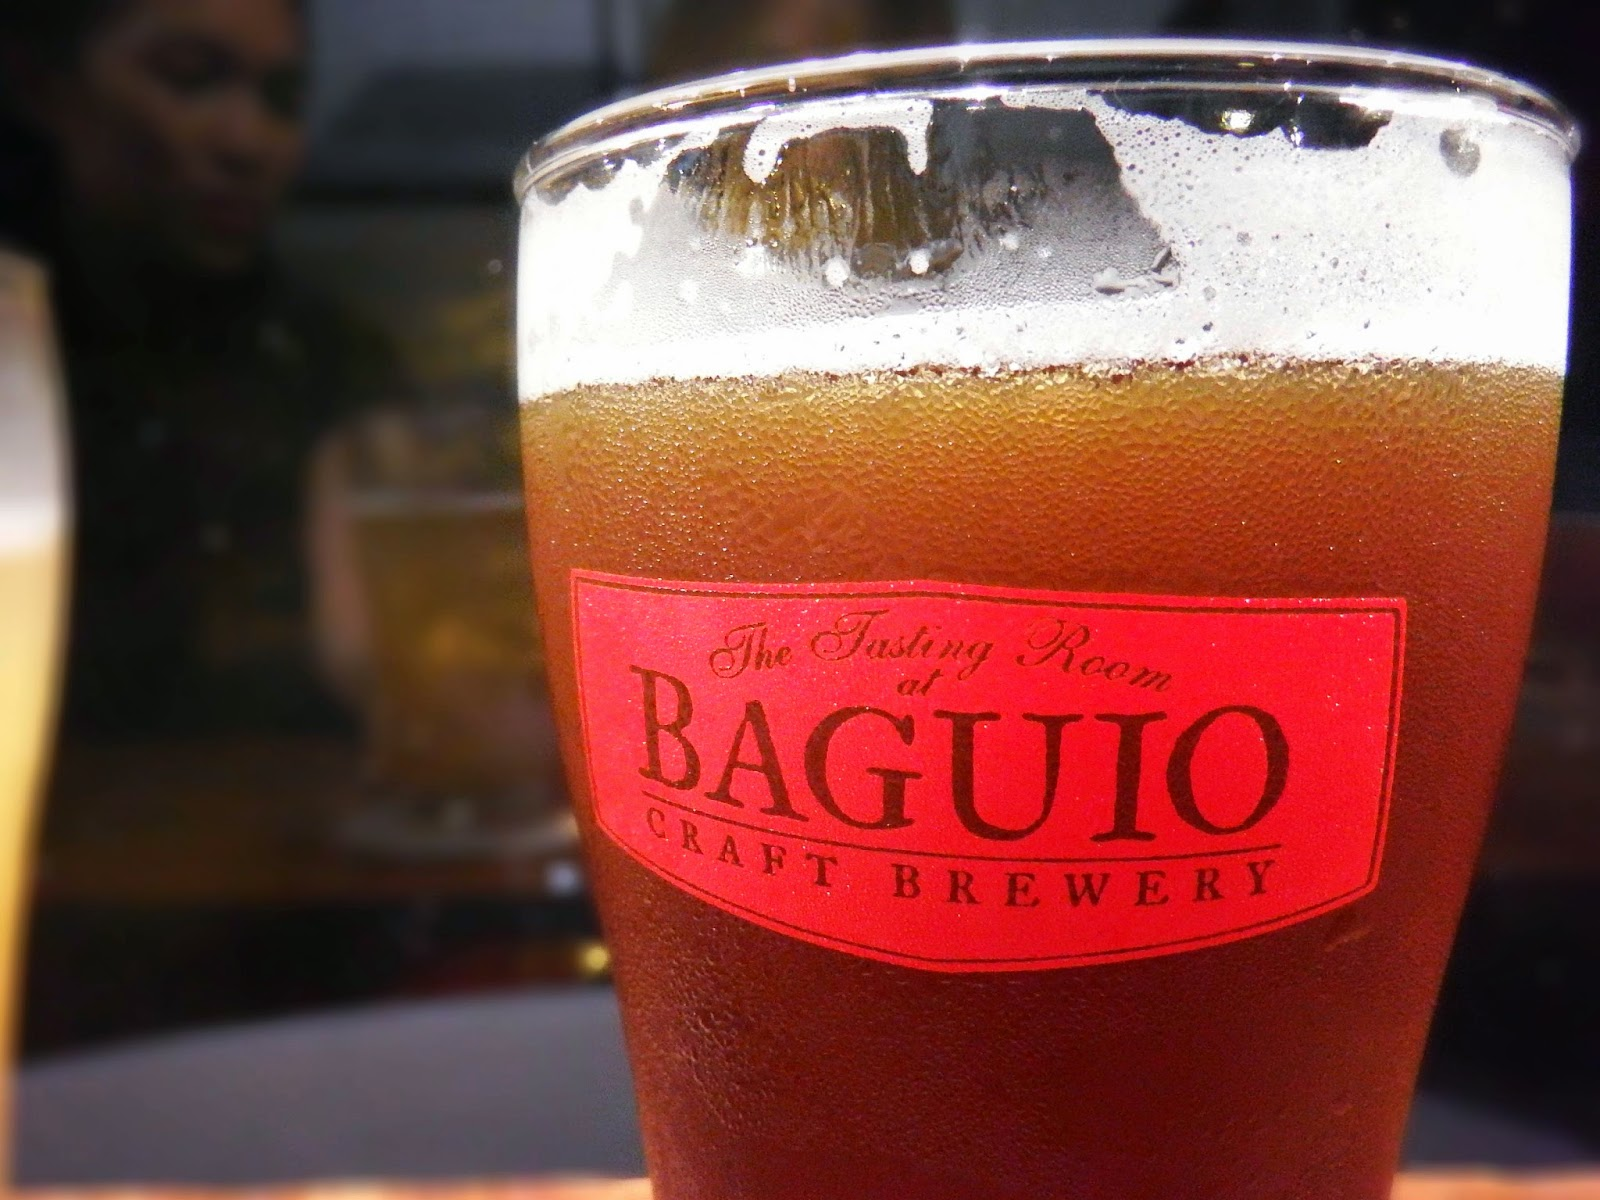 Craft Brewery Baguio Baguio Craft Brewery Has a